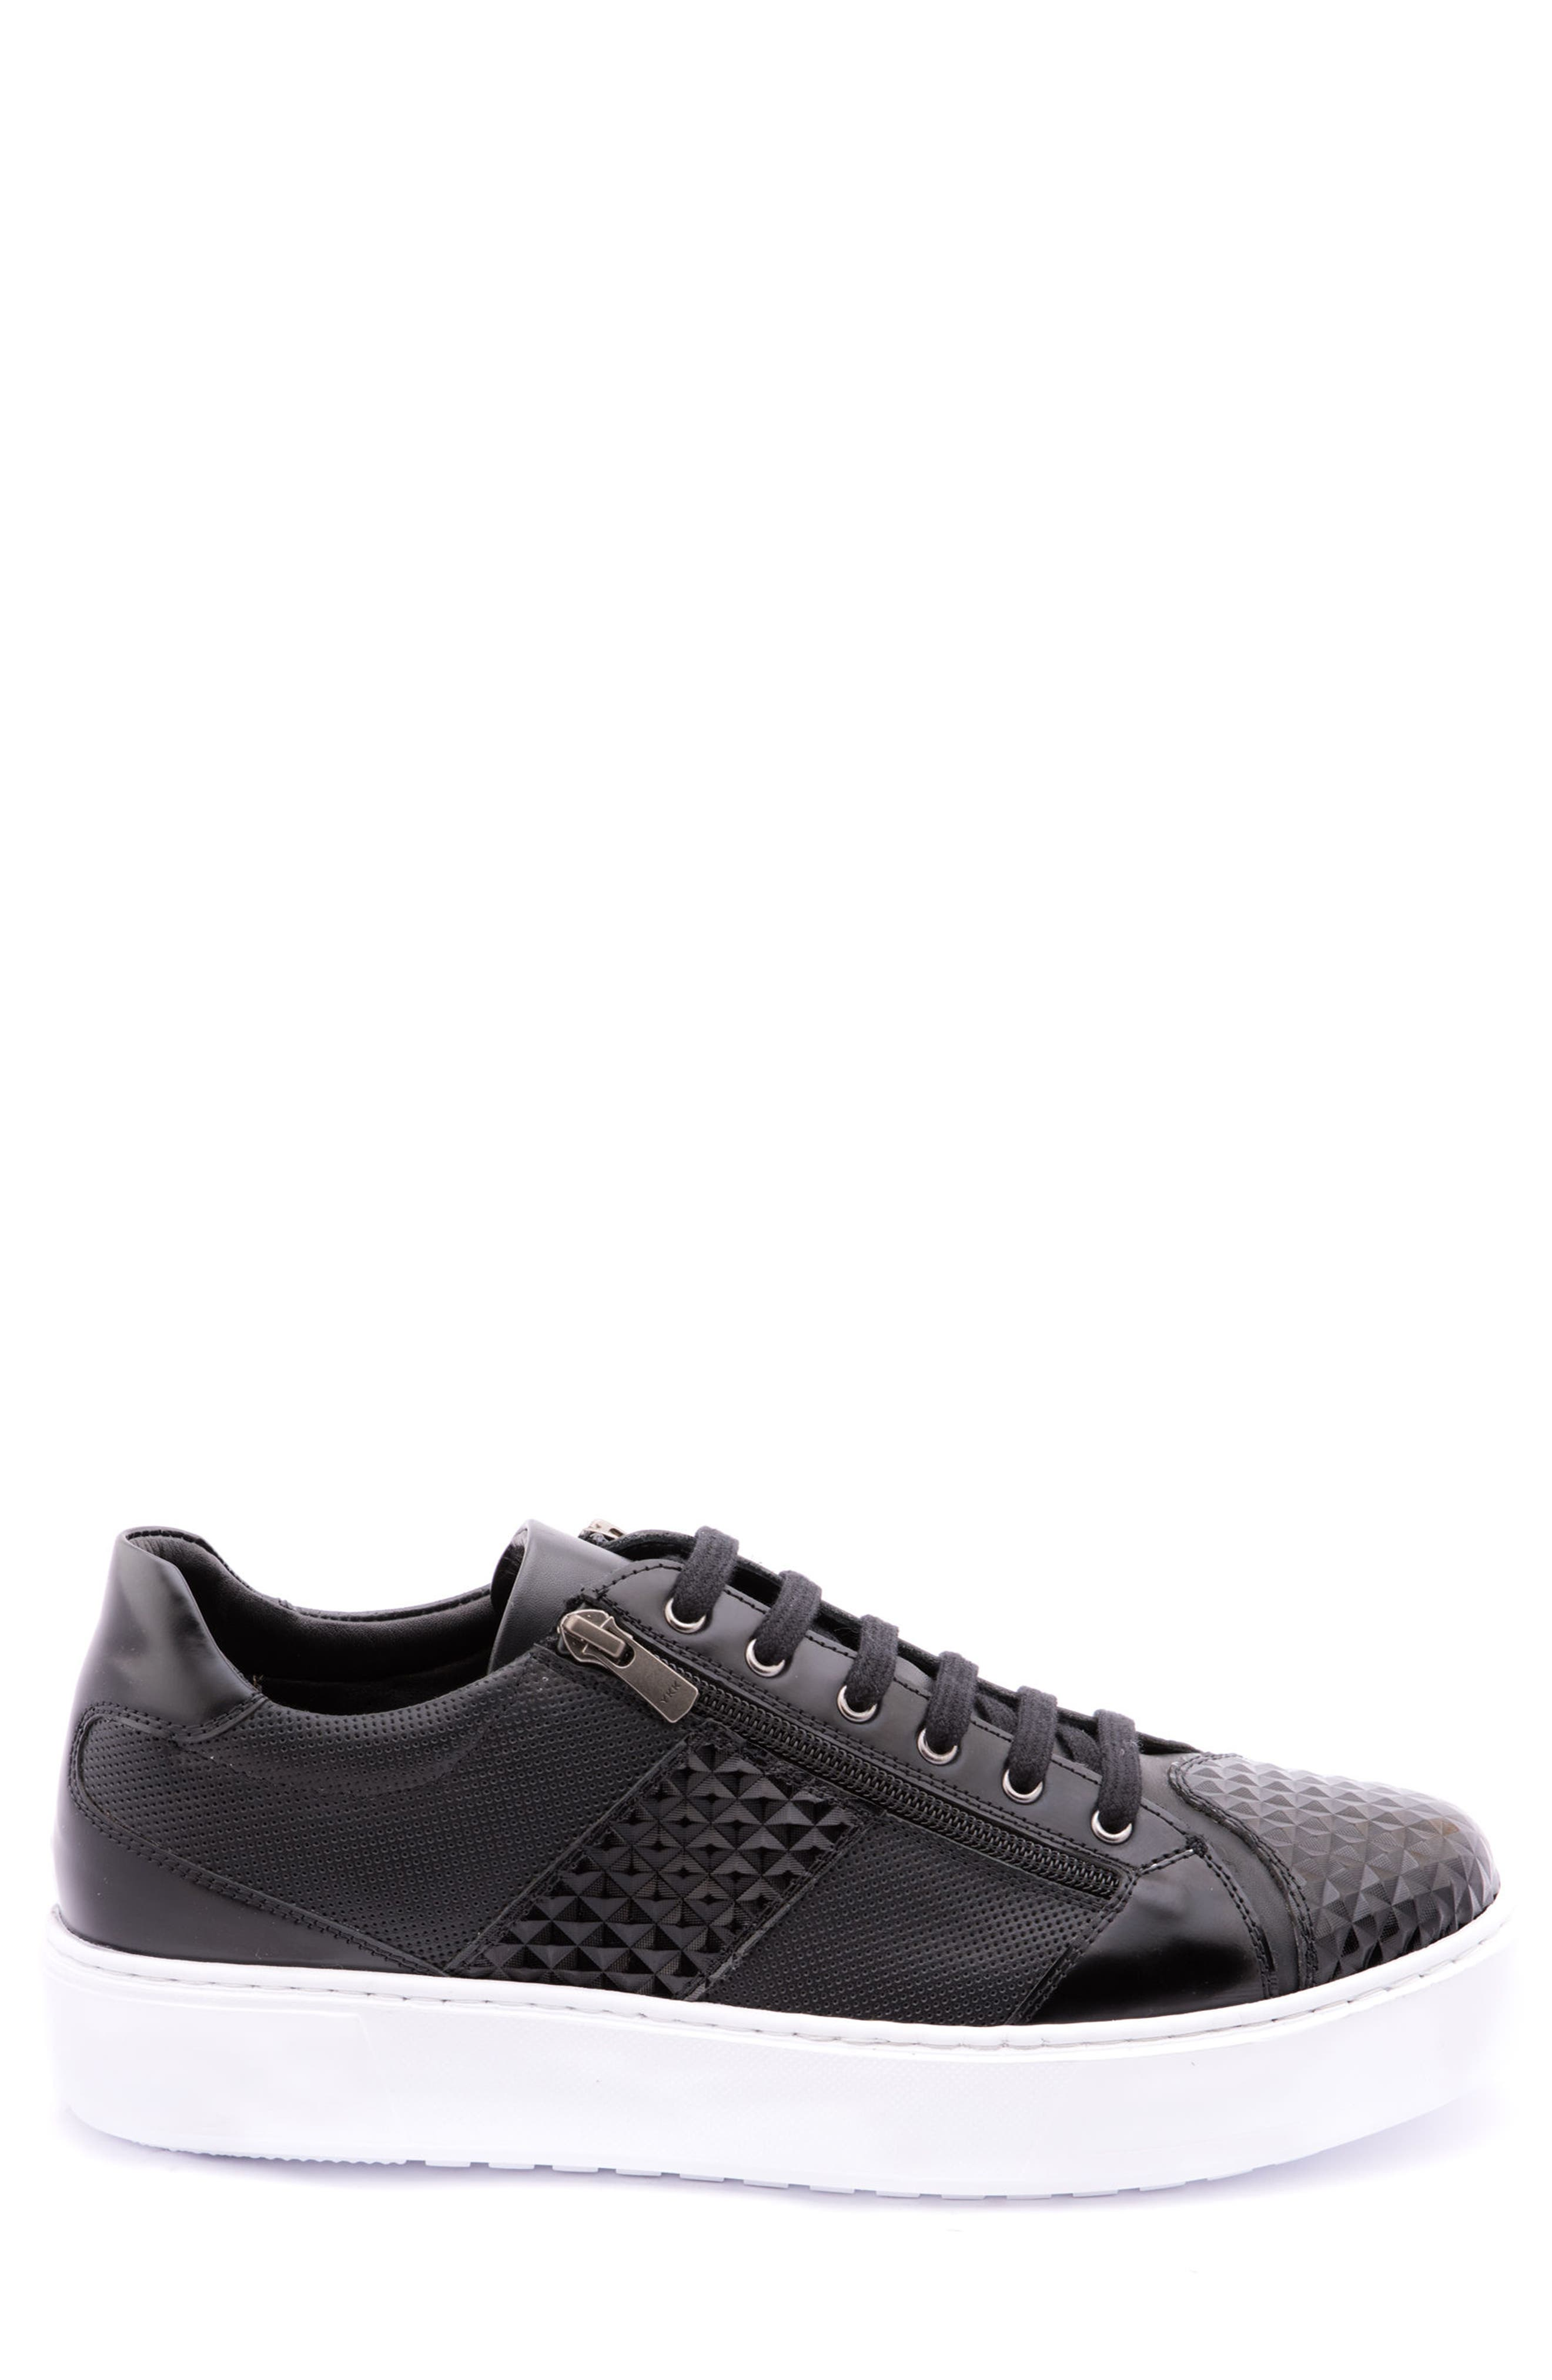 Justin Perforated Sneaker,                             Alternate thumbnail 3, color,                             BLACK